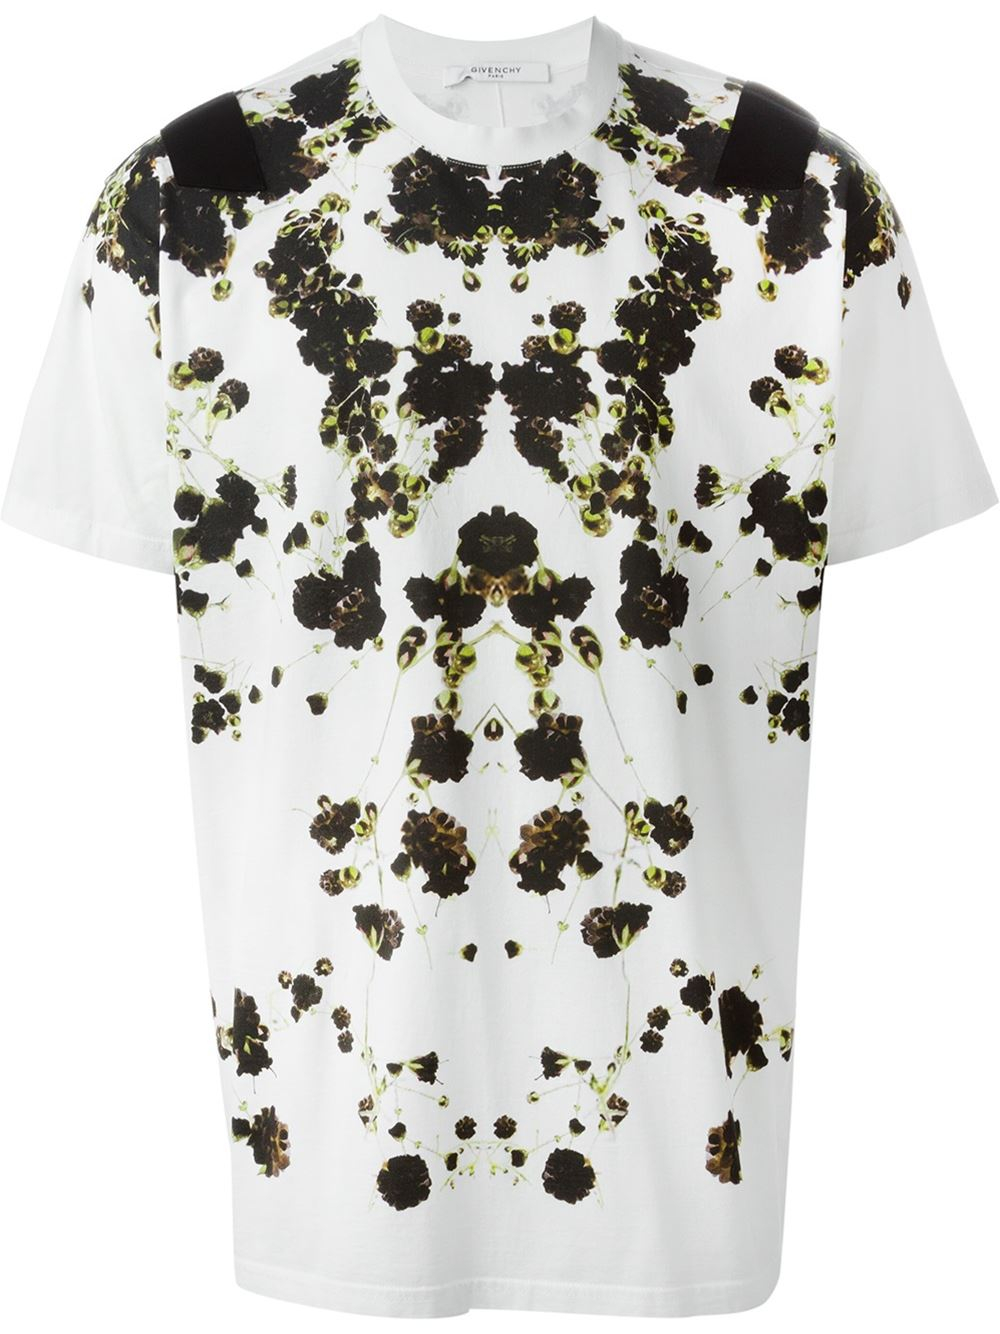 givenchy white floral print t shirt product 1 27792985 0 973764654. Black Bedroom Furniture Sets. Home Design Ideas